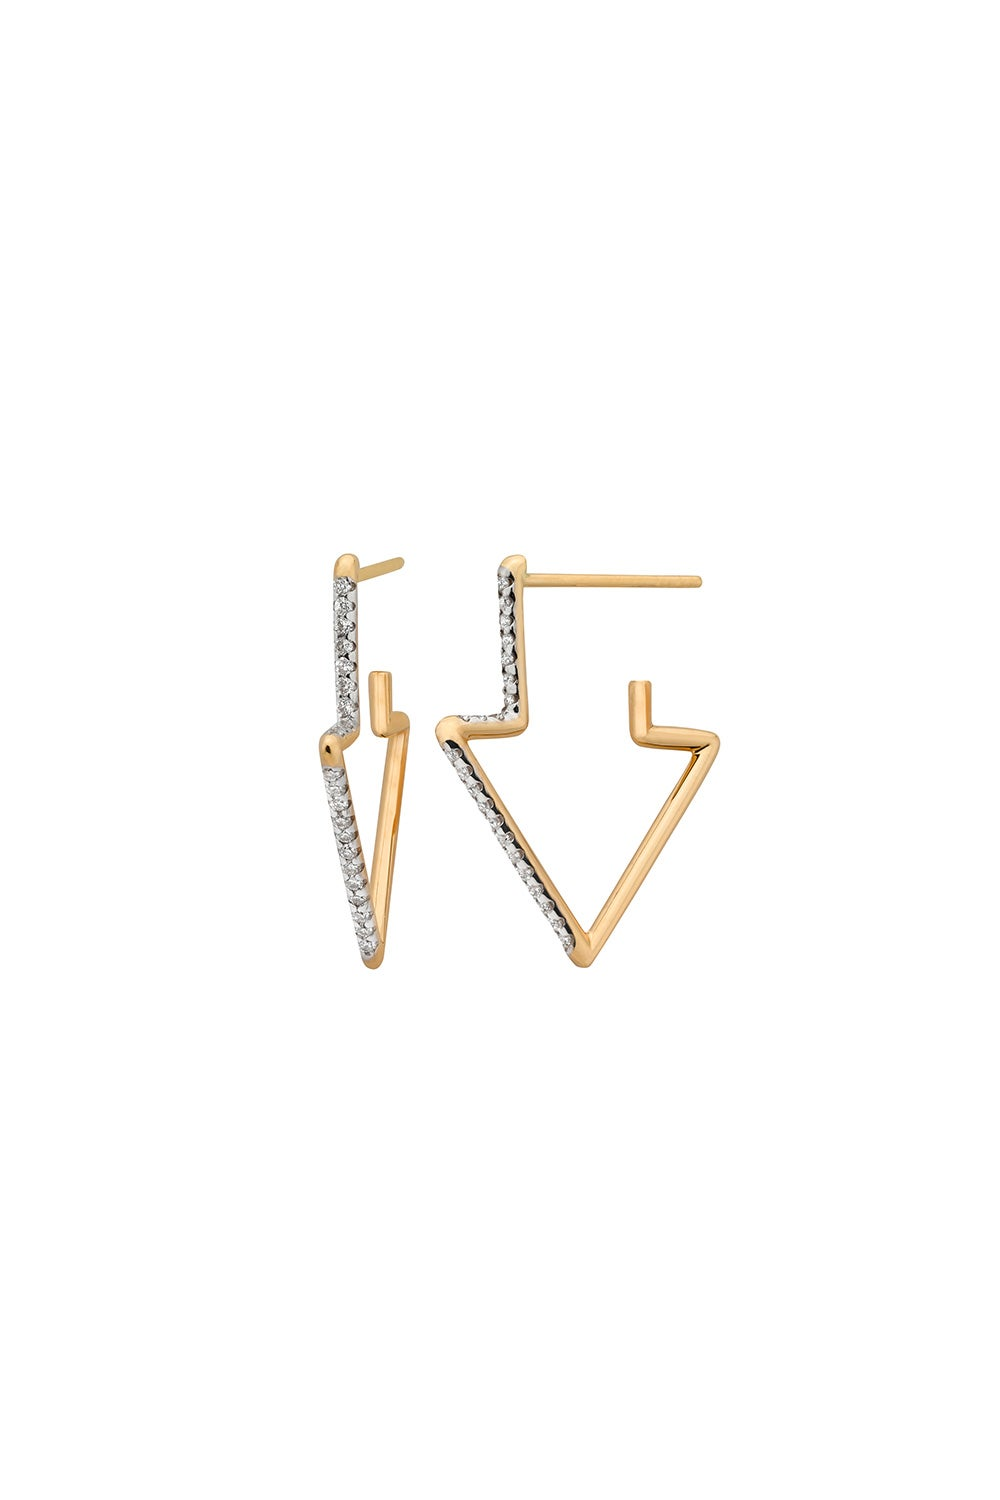 Runaway Arrow Earring, 9ct Gold, .24ct Diamond